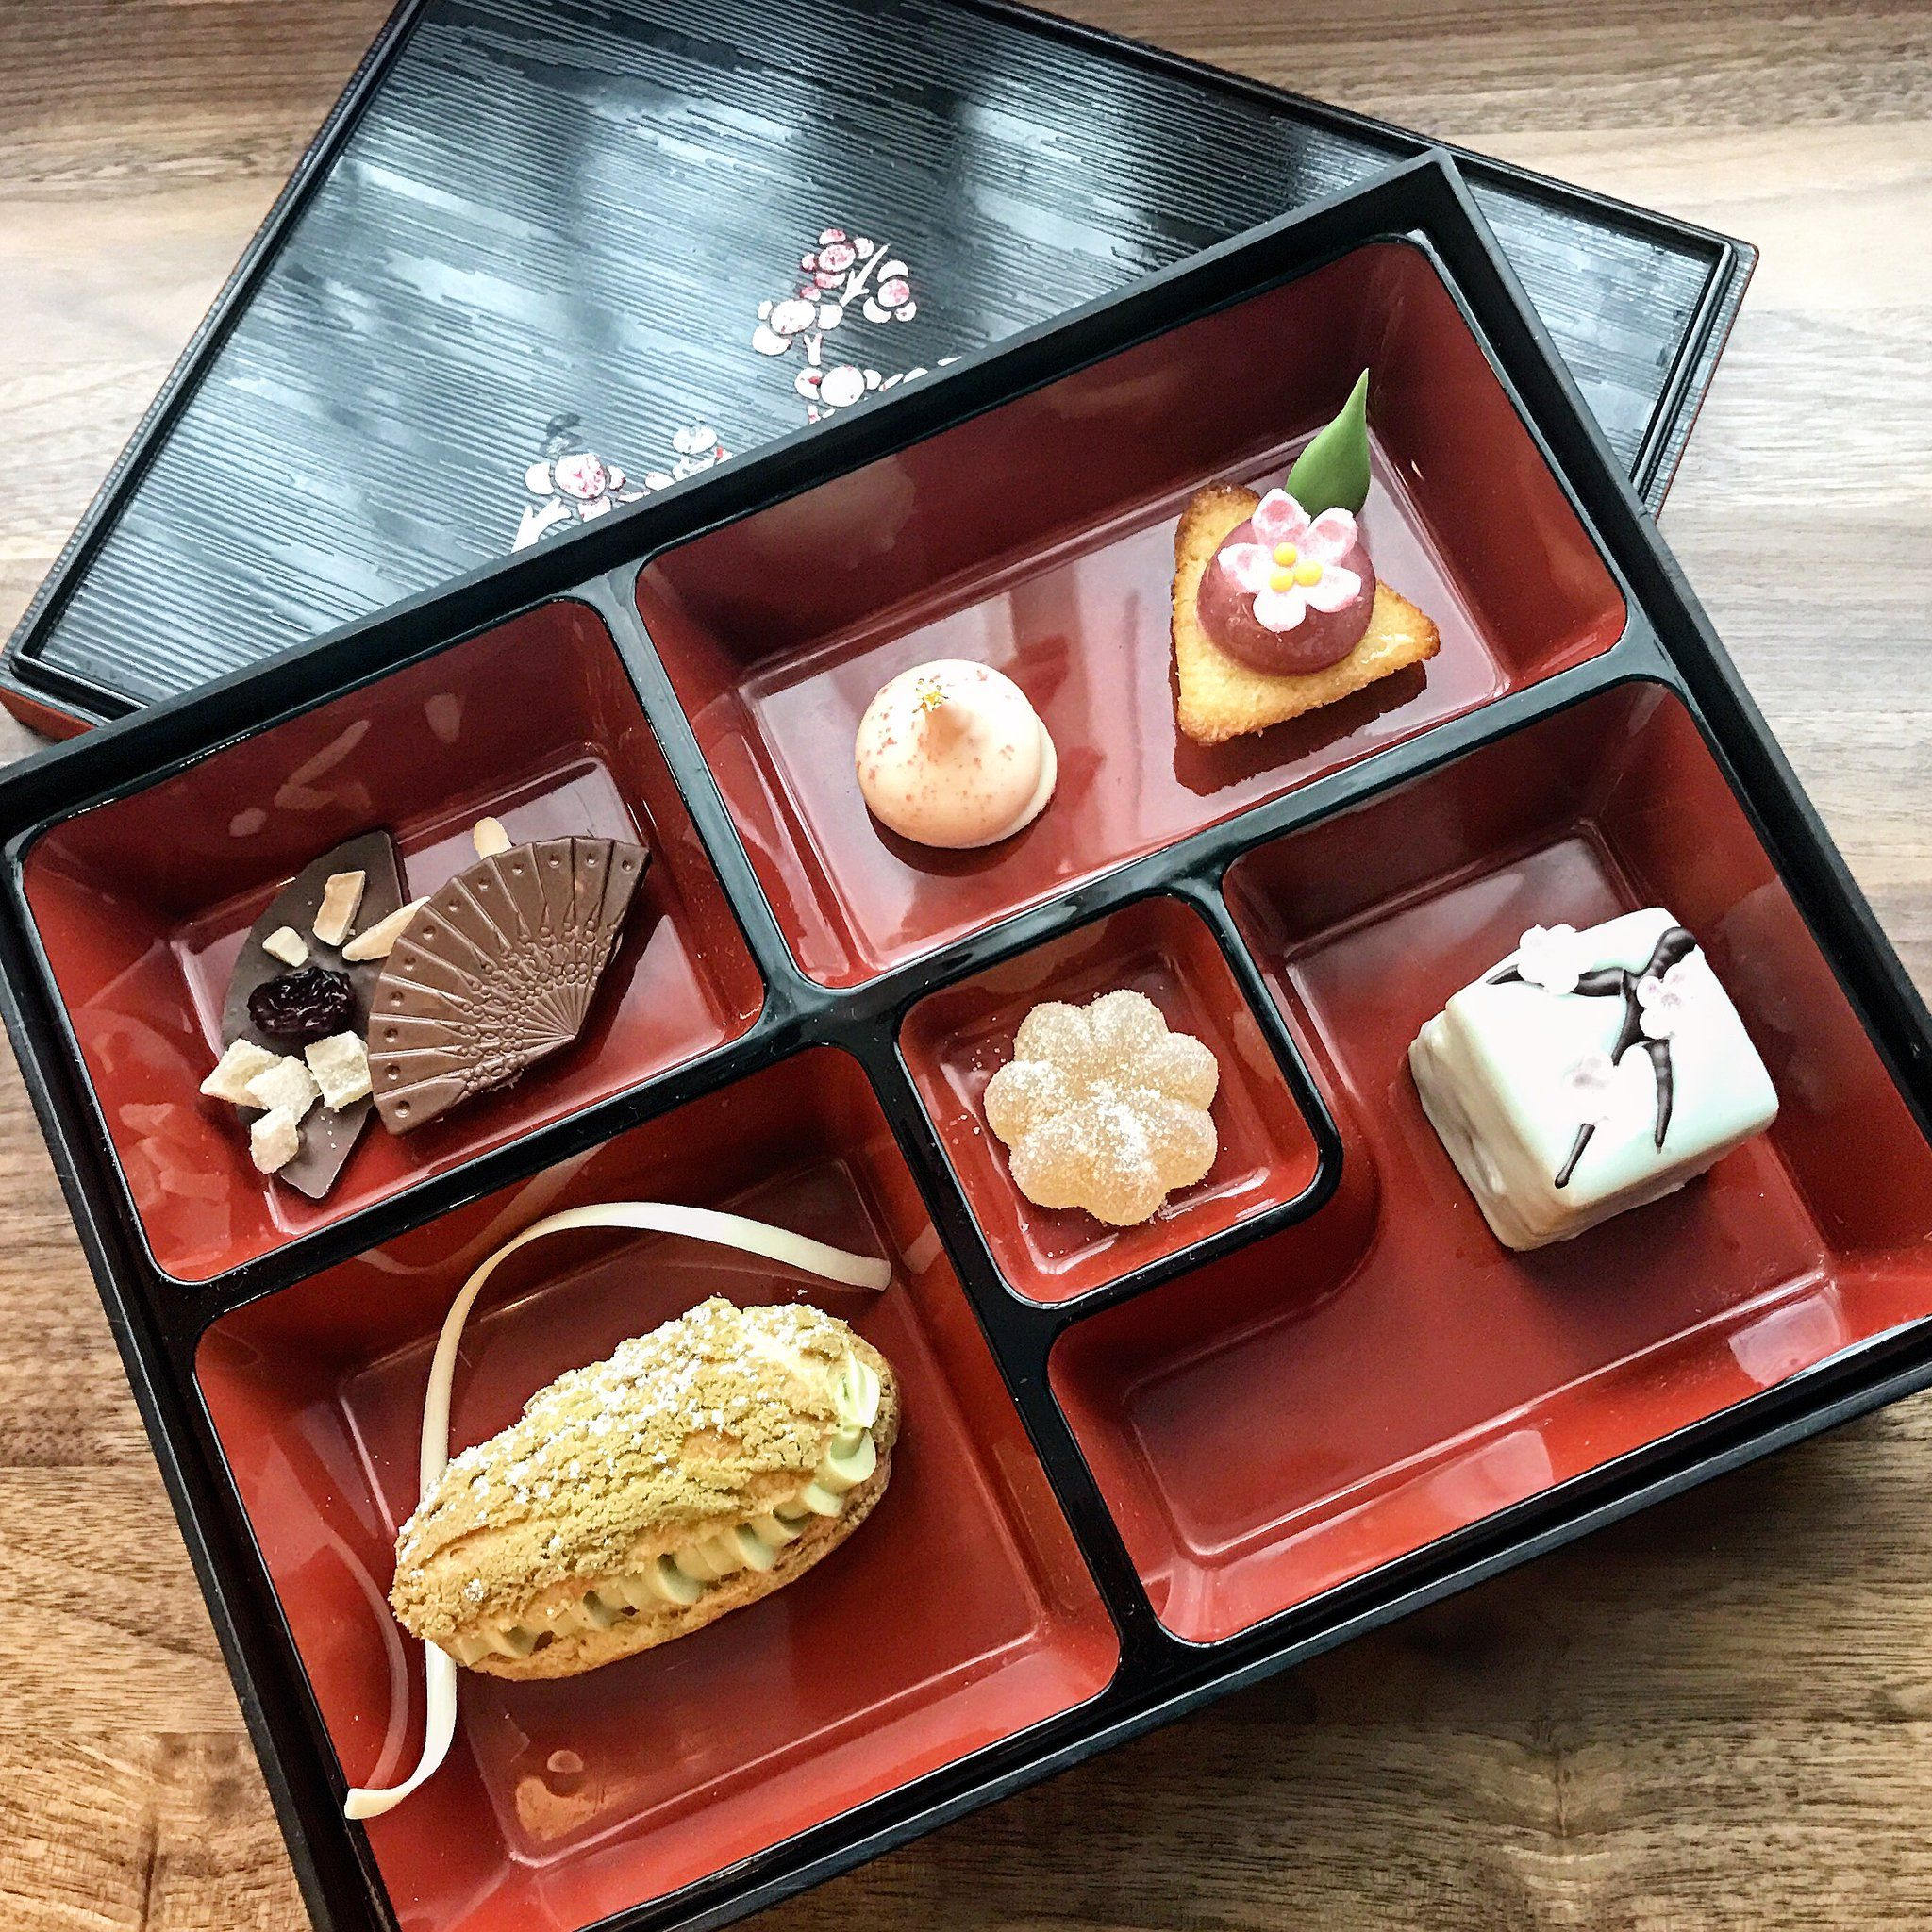 Following Japanese Traditions Chefs At The Ritz Carlton Washington D C Prepare Bento Box Lunches For Guests Viewing The Cherr Ritz Carlton Ritz Luxury Hotel